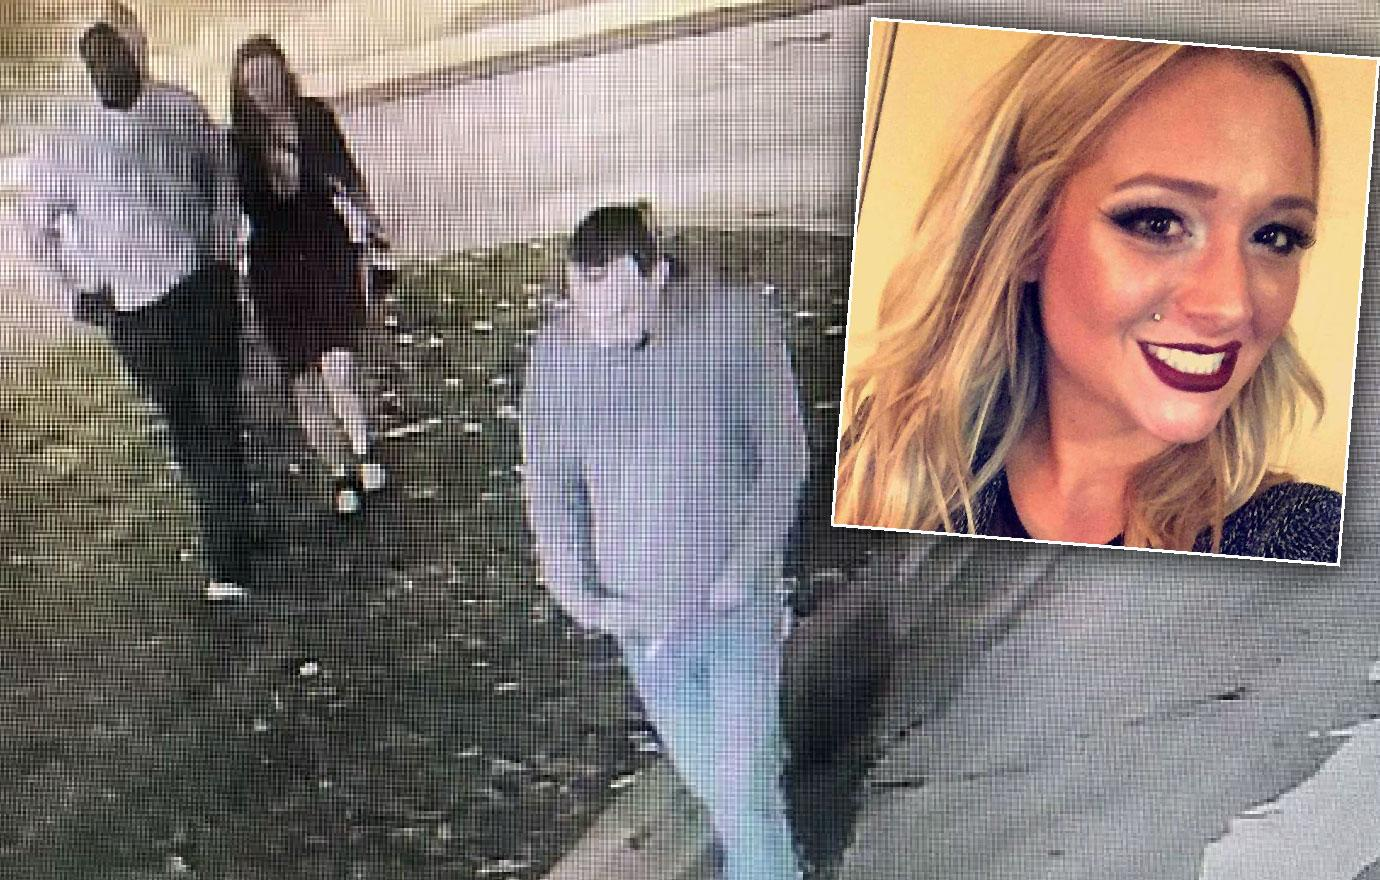 Missing Mom Savannah Spurlock's Family Releases New Photos